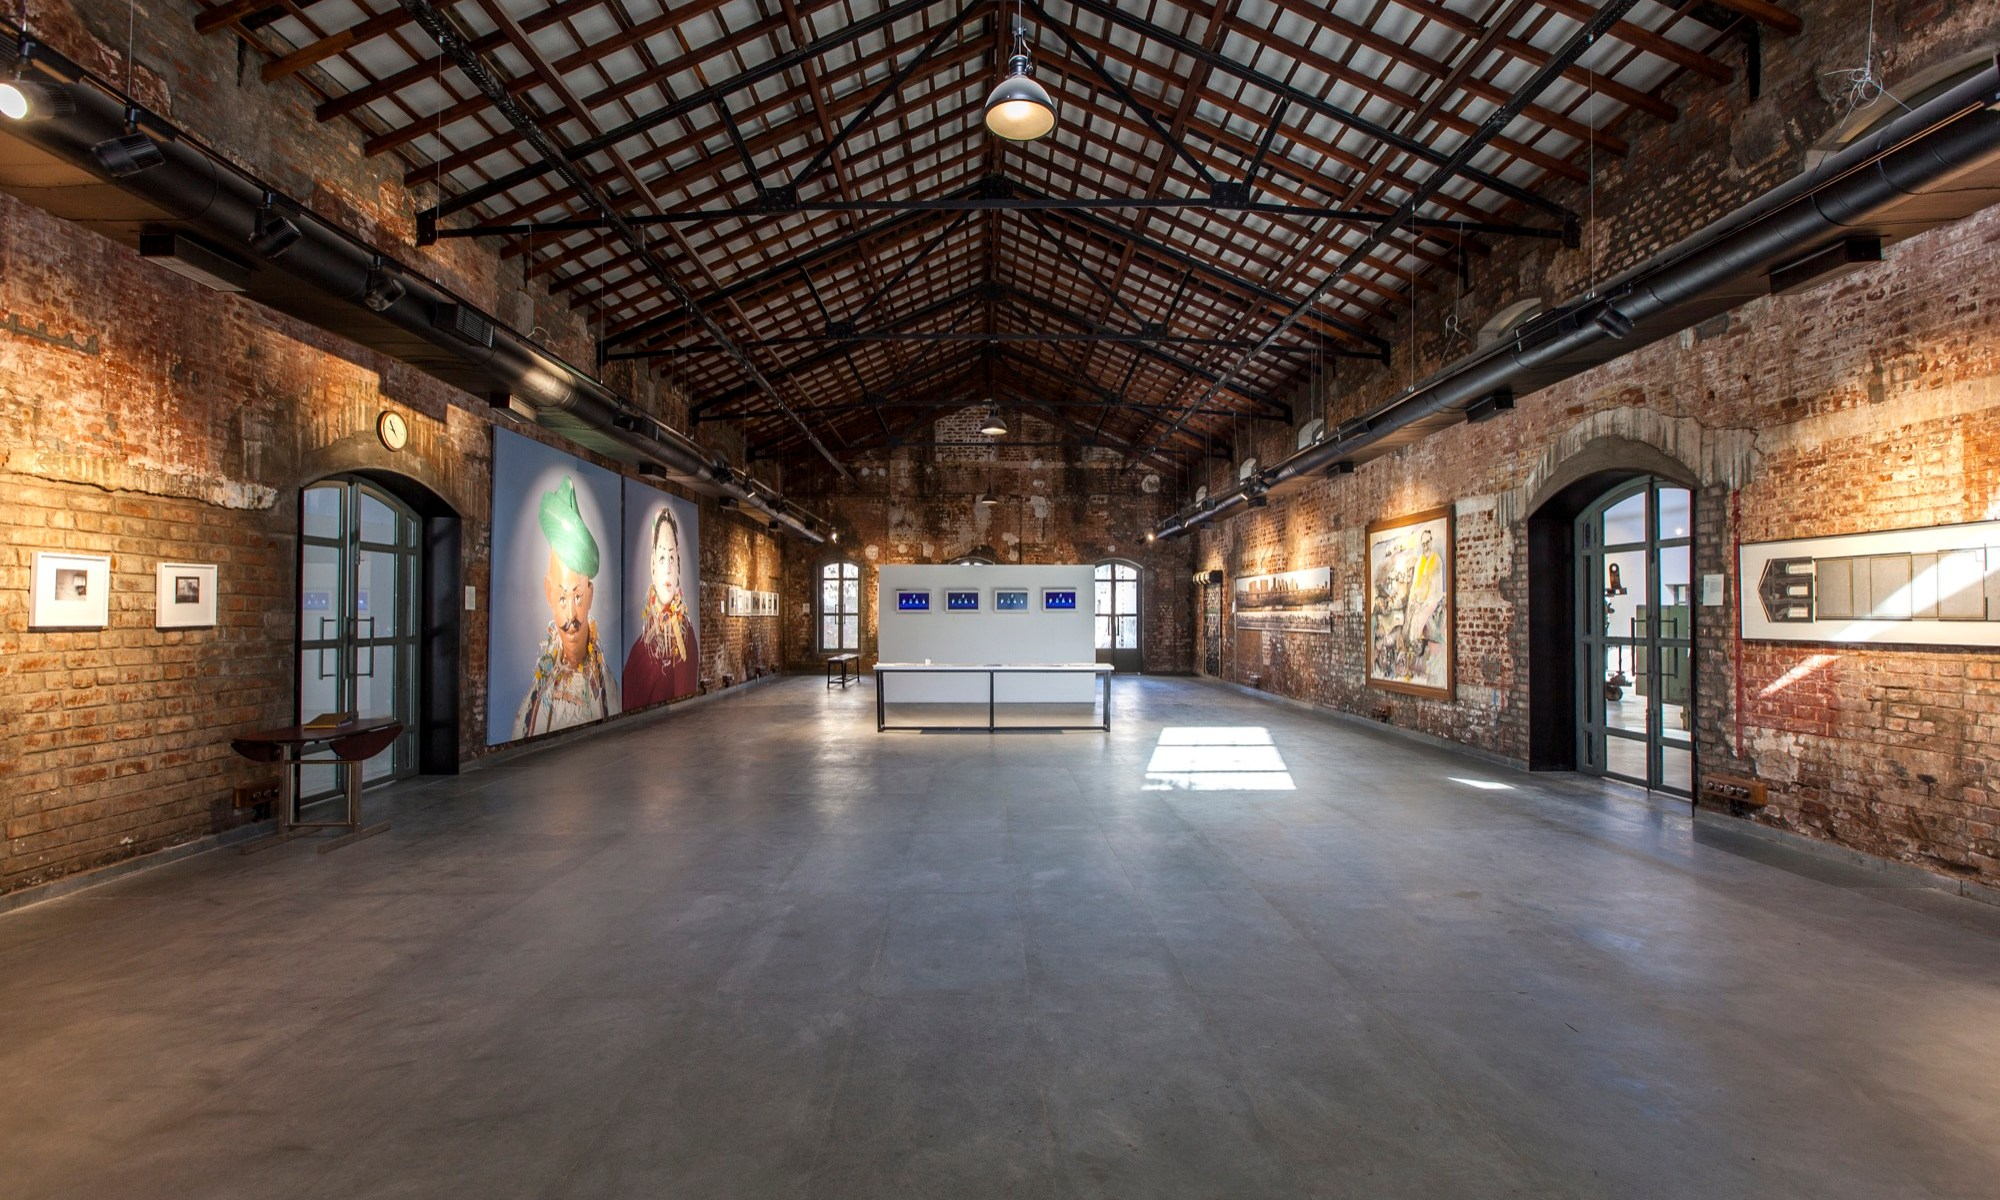 Alembic Industrial Heritage and redevelopment at Vadodara, by Karan Grover and Associates 3